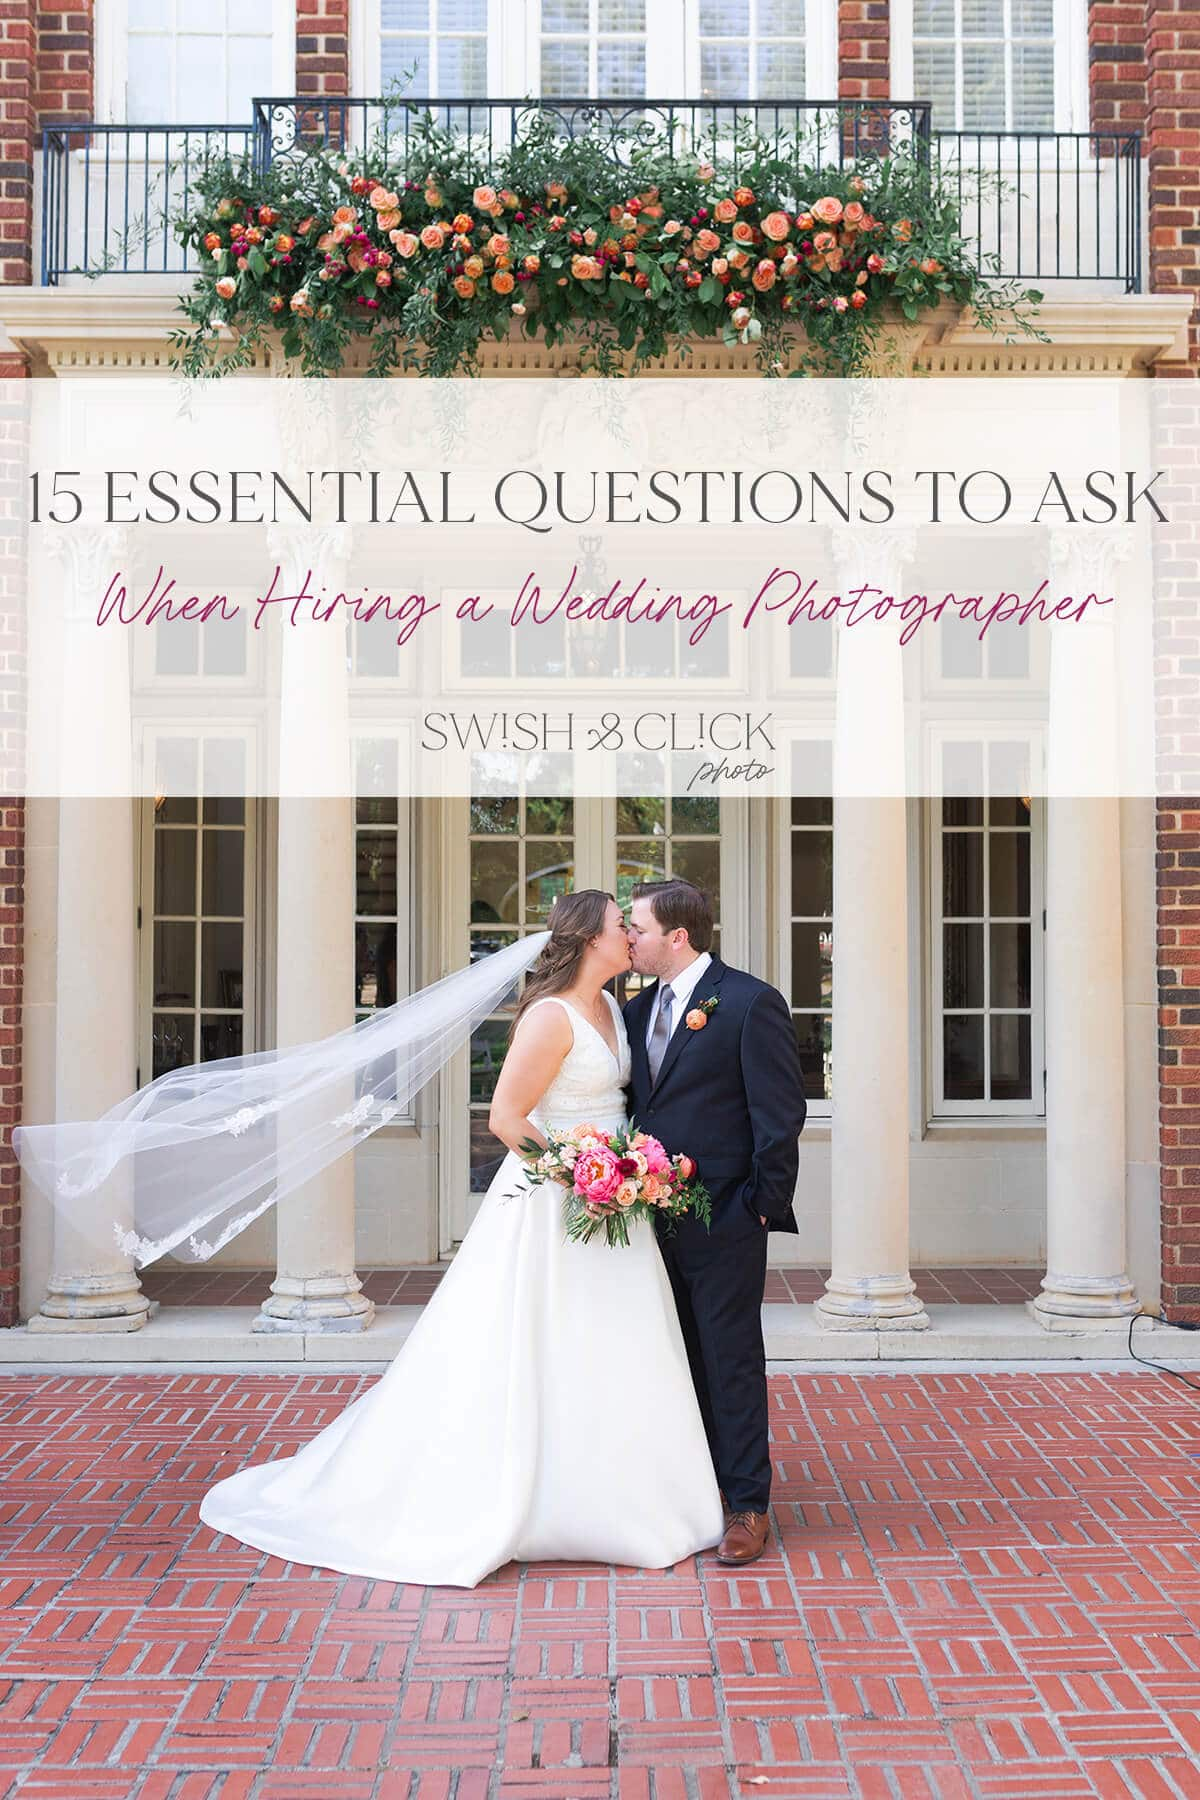 15 Essential Questions to ask When Hiring aWedding Photographer